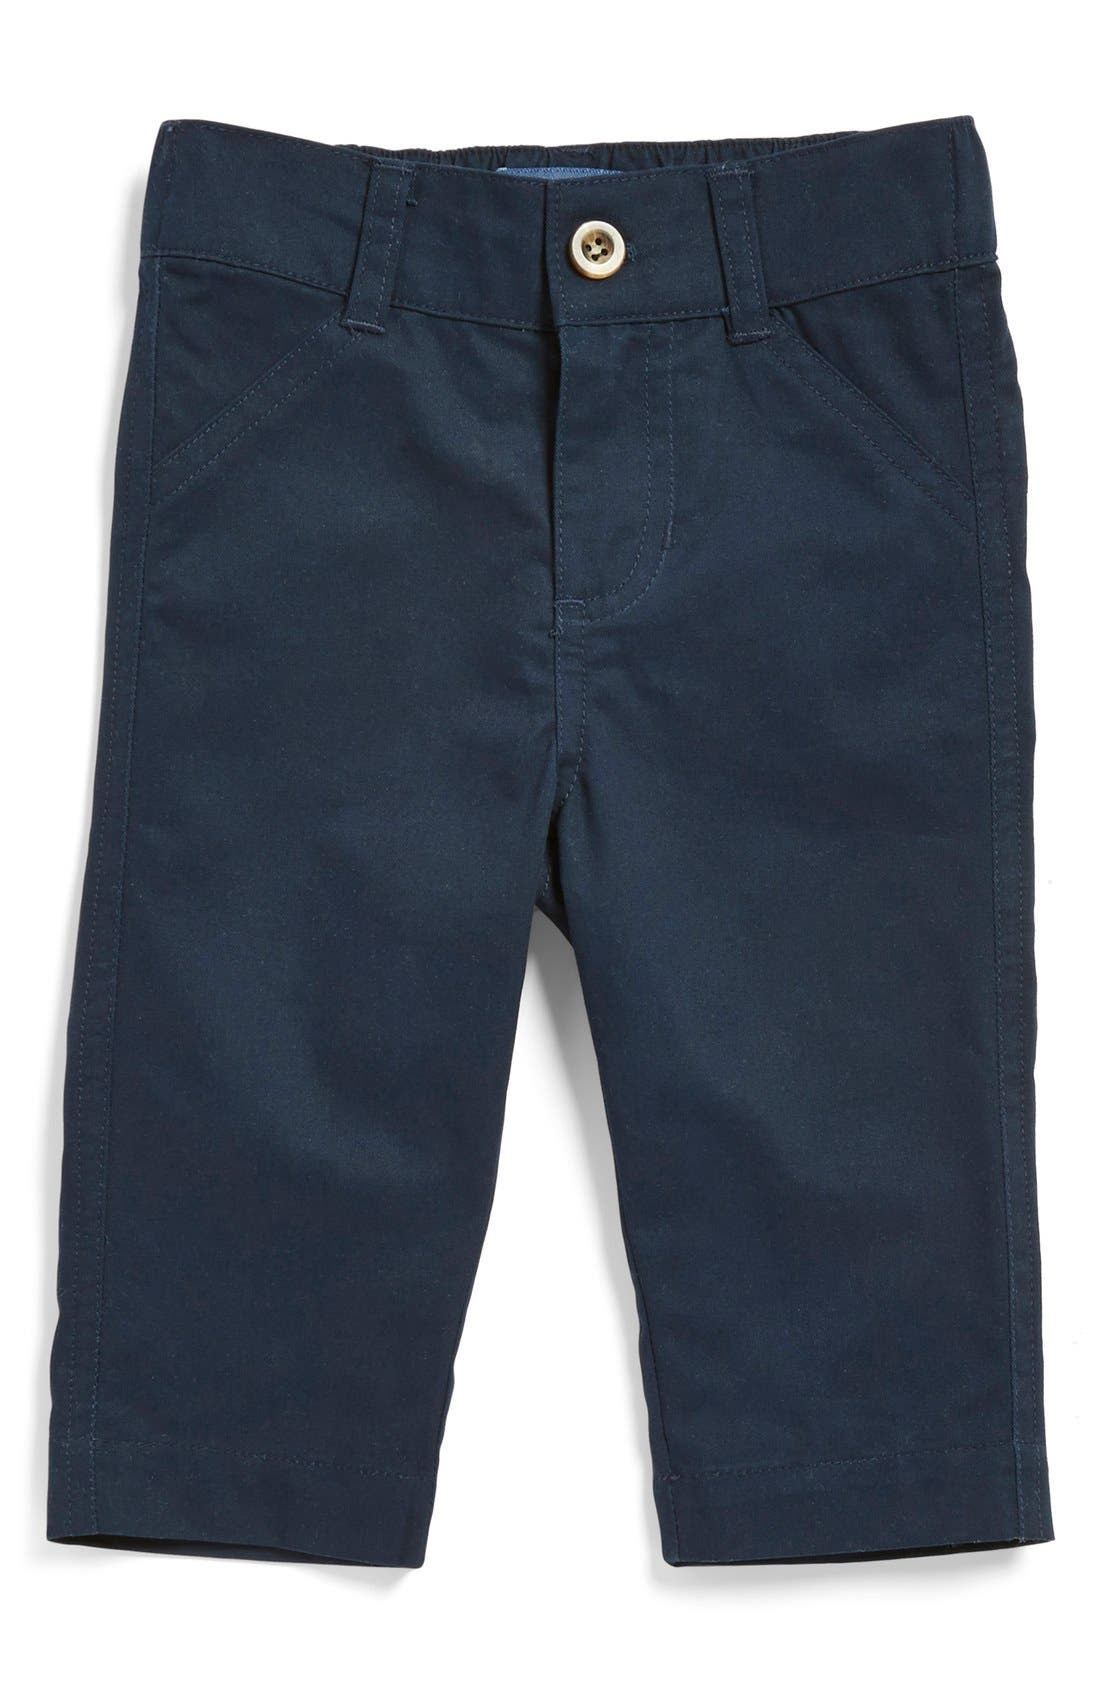 Alternate Image 1 Selected - Andy & Evan Flat Front Twill Pants (Baby Boys)